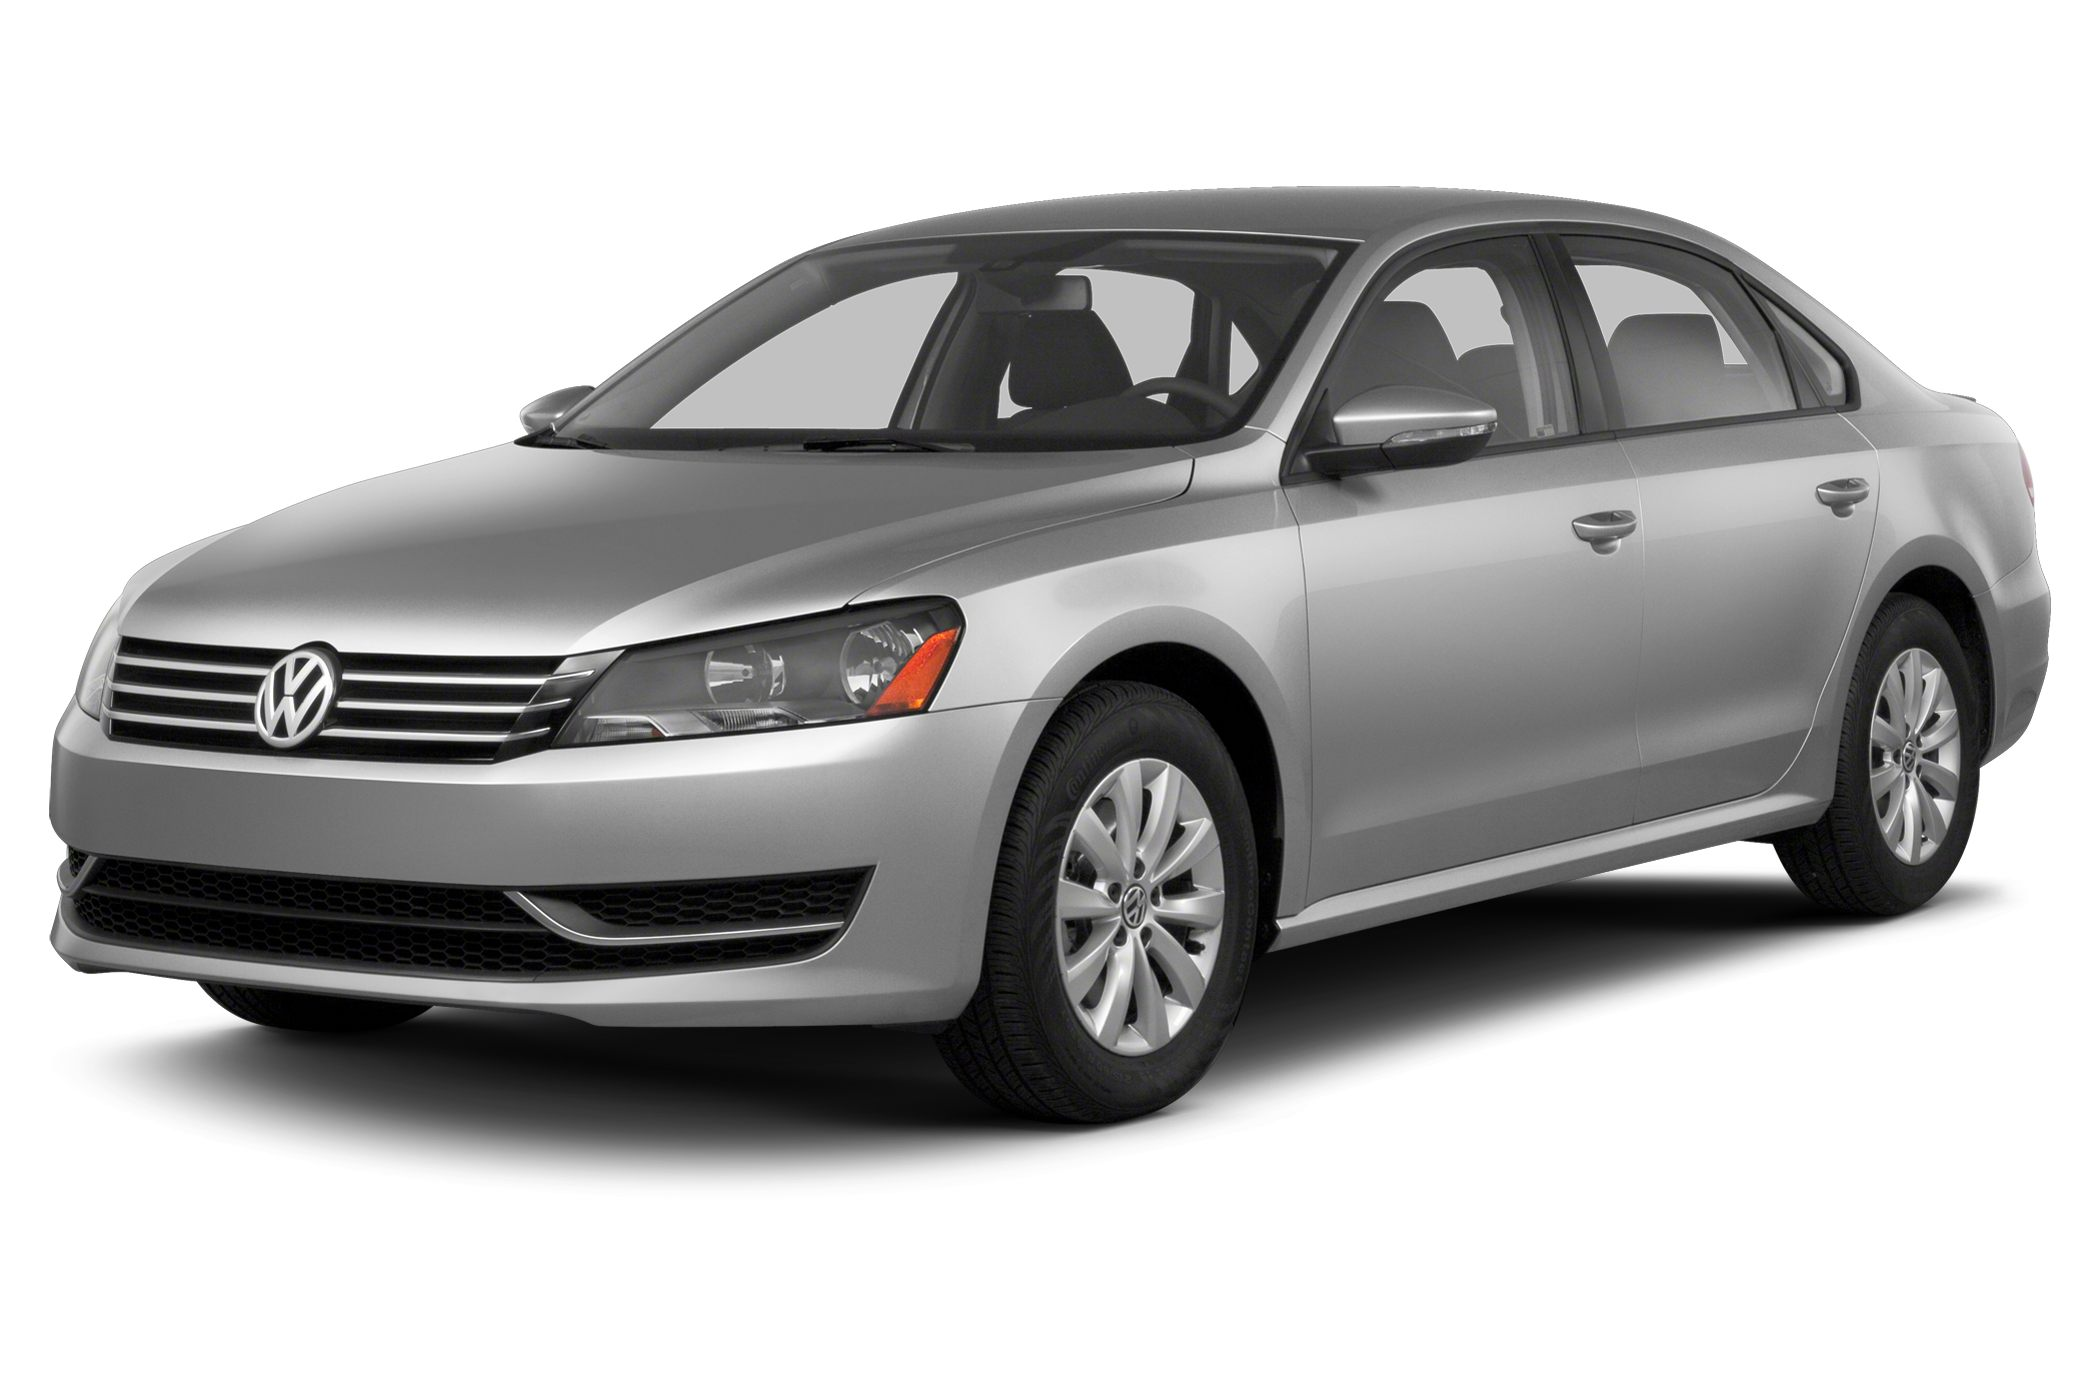 2013 Volkswagen Passat 2.0 TDI SEL Premium Sedan for sale in Easton for $0 with 16,114 miles